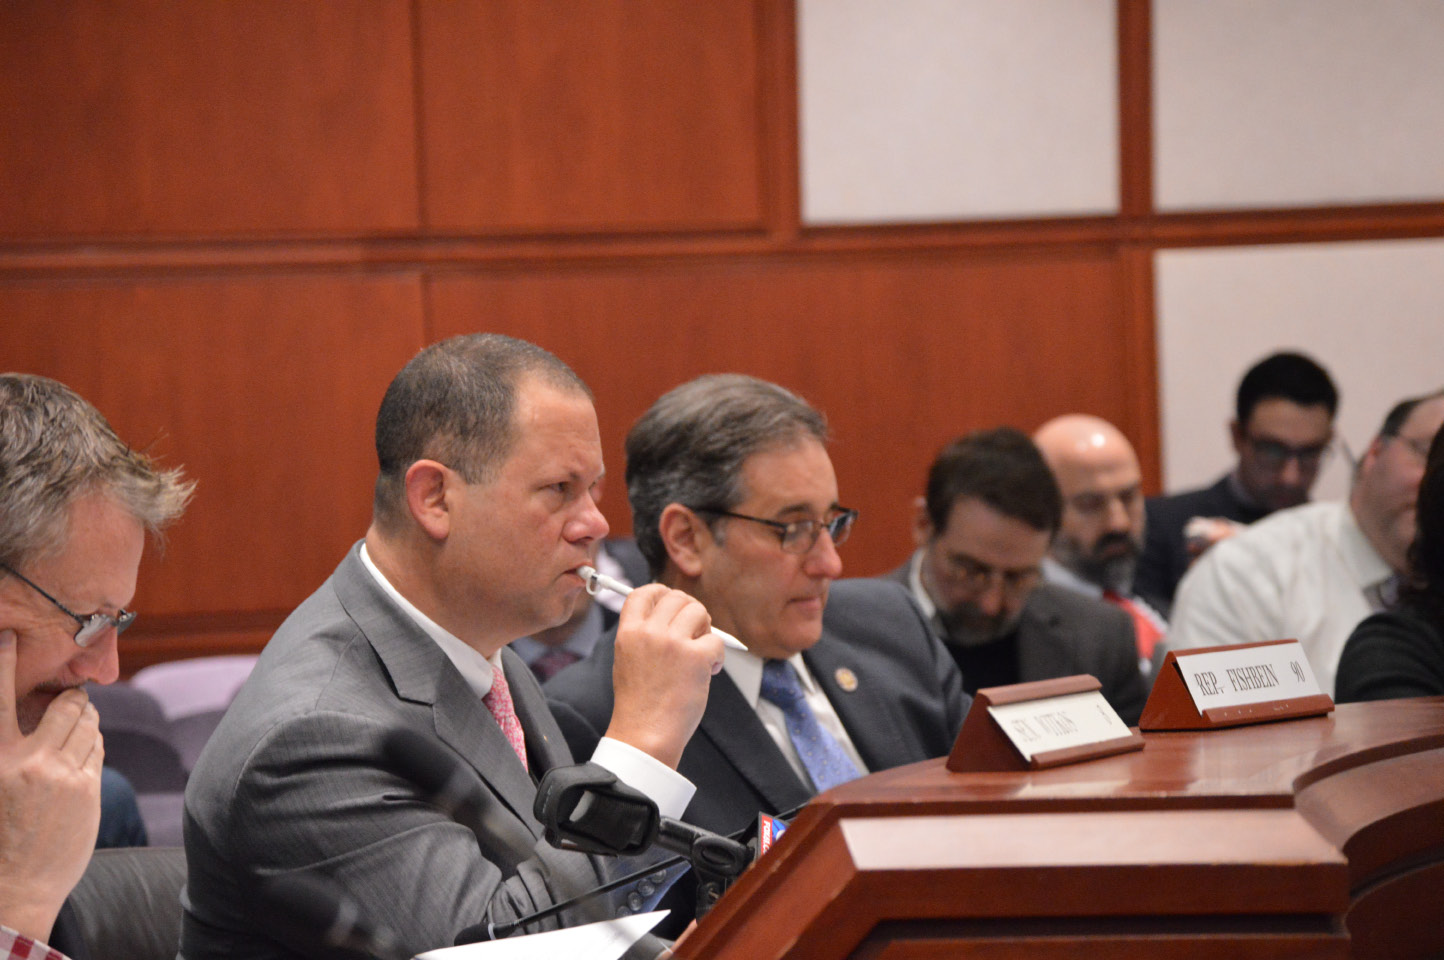 Rep. Craig Fishbein, R-Wallingford, left, and Rep. John Fusco, R-Southington, during a Public Safety and Security Committee meeting Wednesday. | Mike Savino, Record-Journal